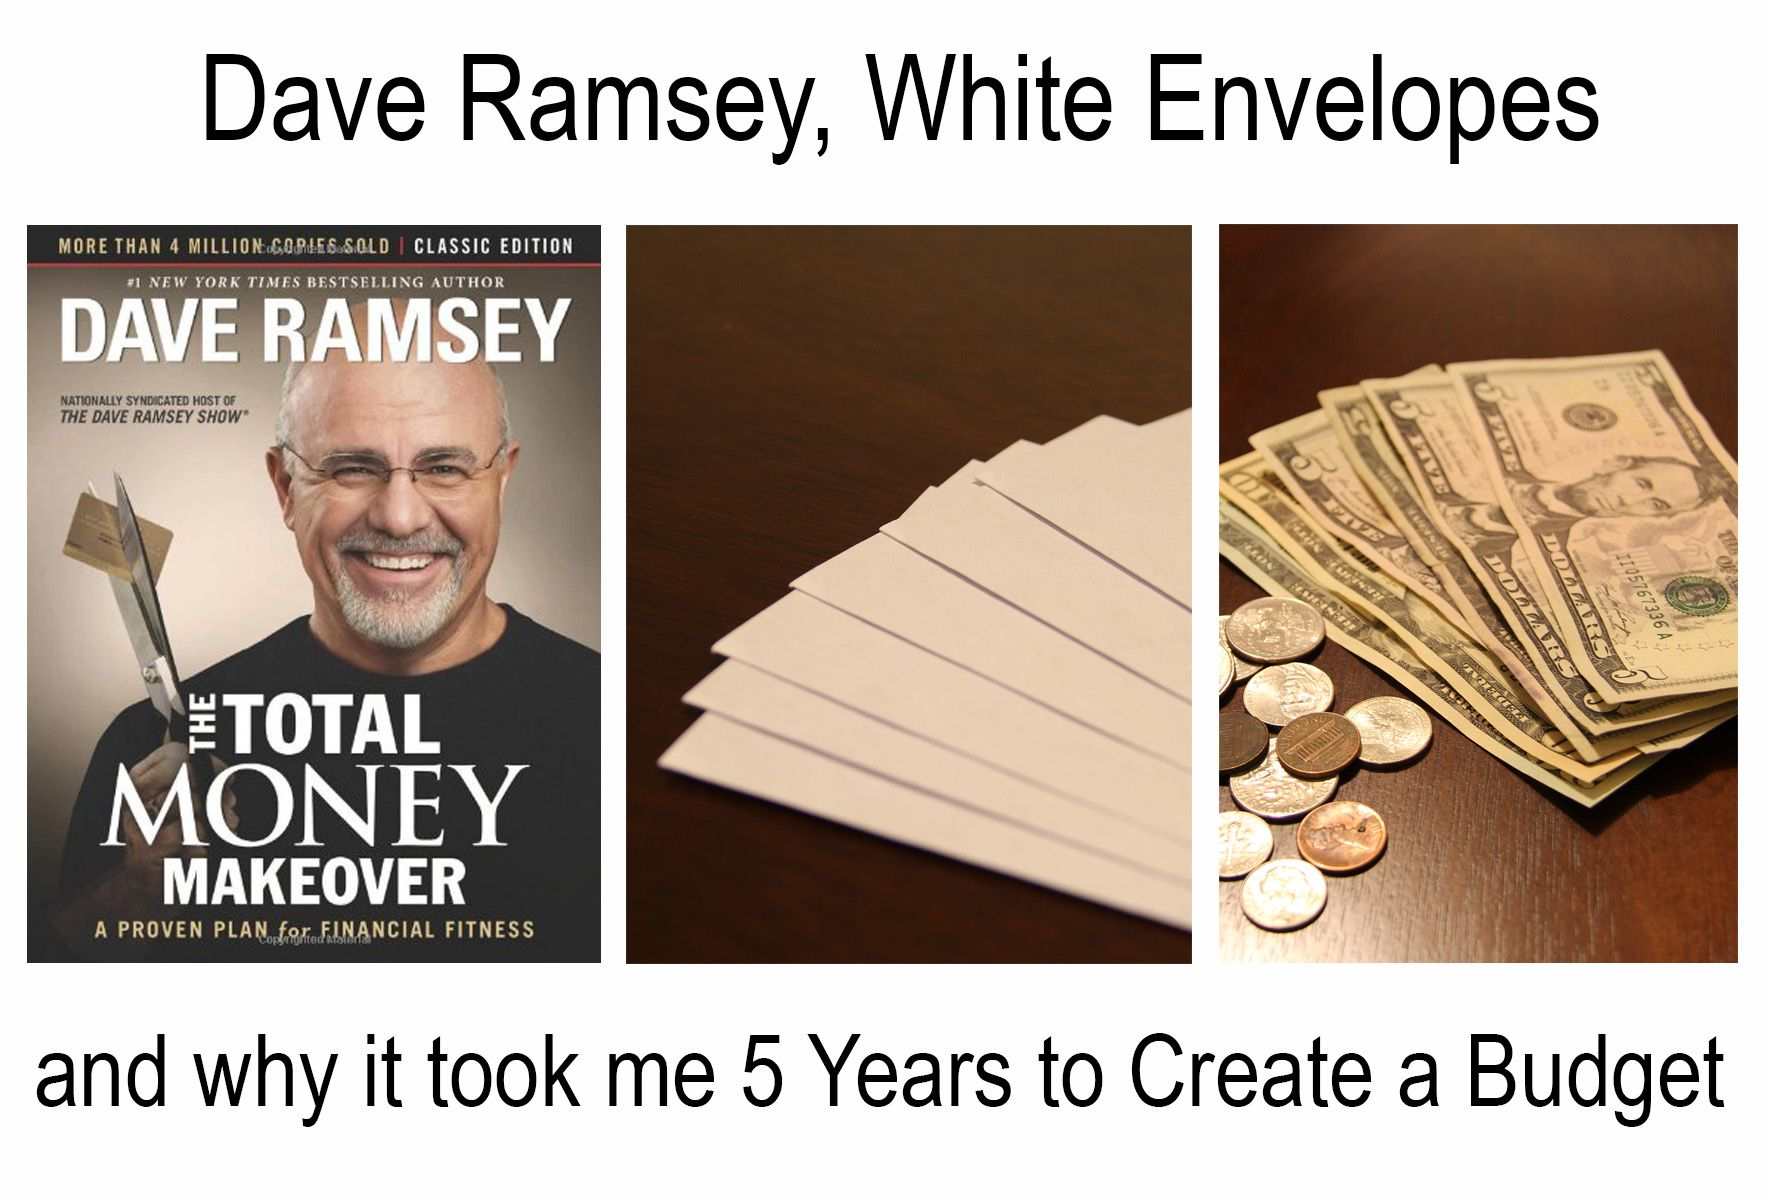 Dave Ramsey Little White Envelopes And Why It Took Me 5